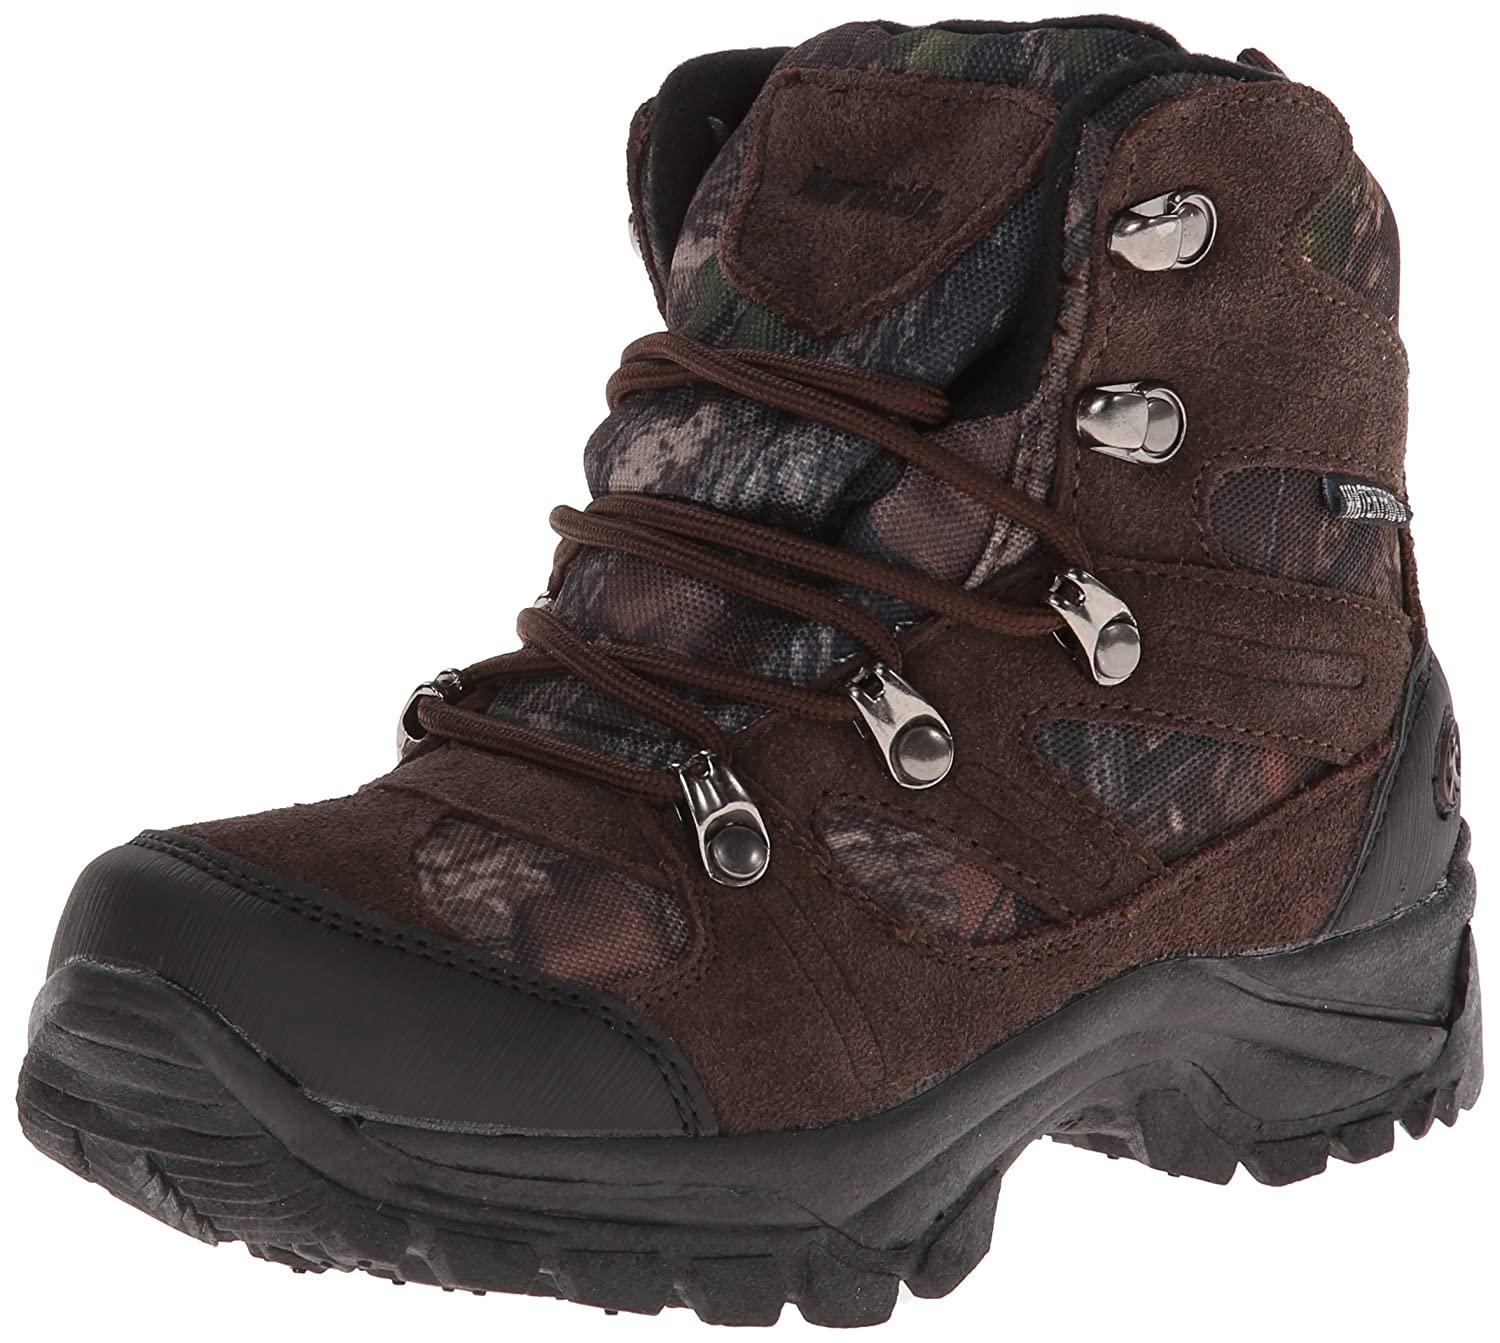 Northside Tracker JR 400 Waterproof Hiking Boot (Little Kid/Big Kid) TRACKER JR 400 - K